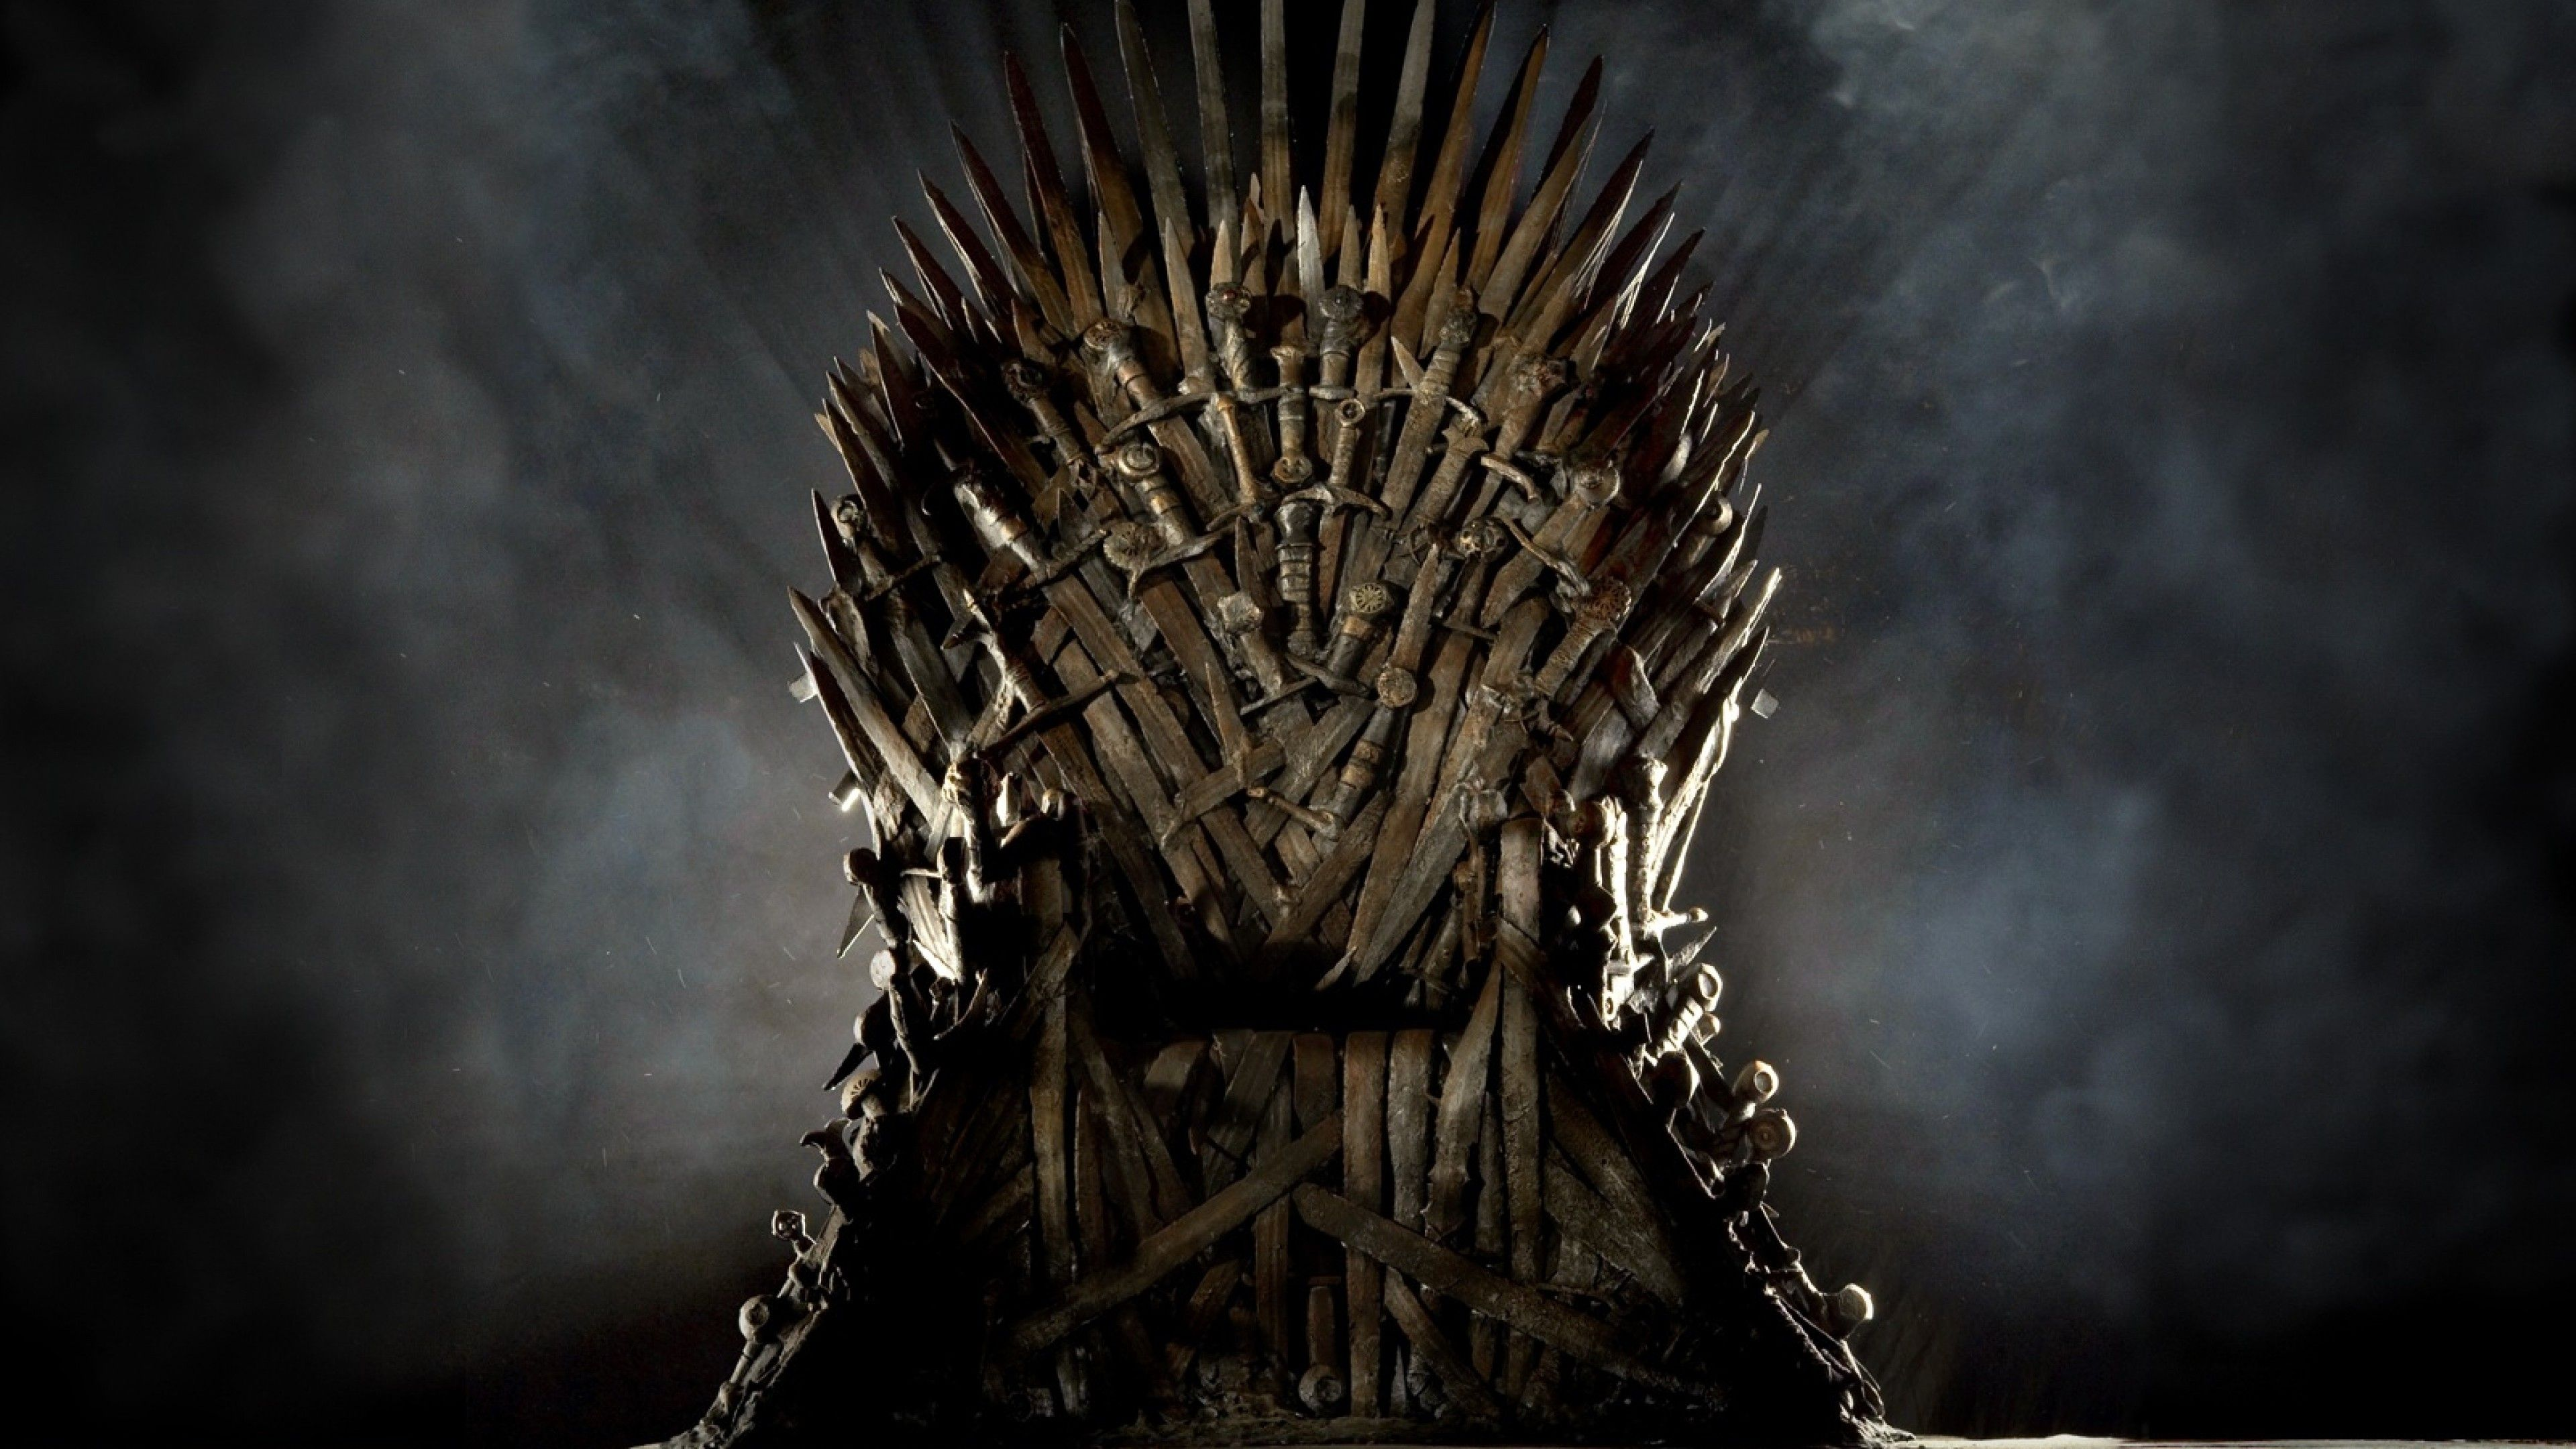 4k Game Of Thrones Wallpapers Top Free 4k Game Of Thrones